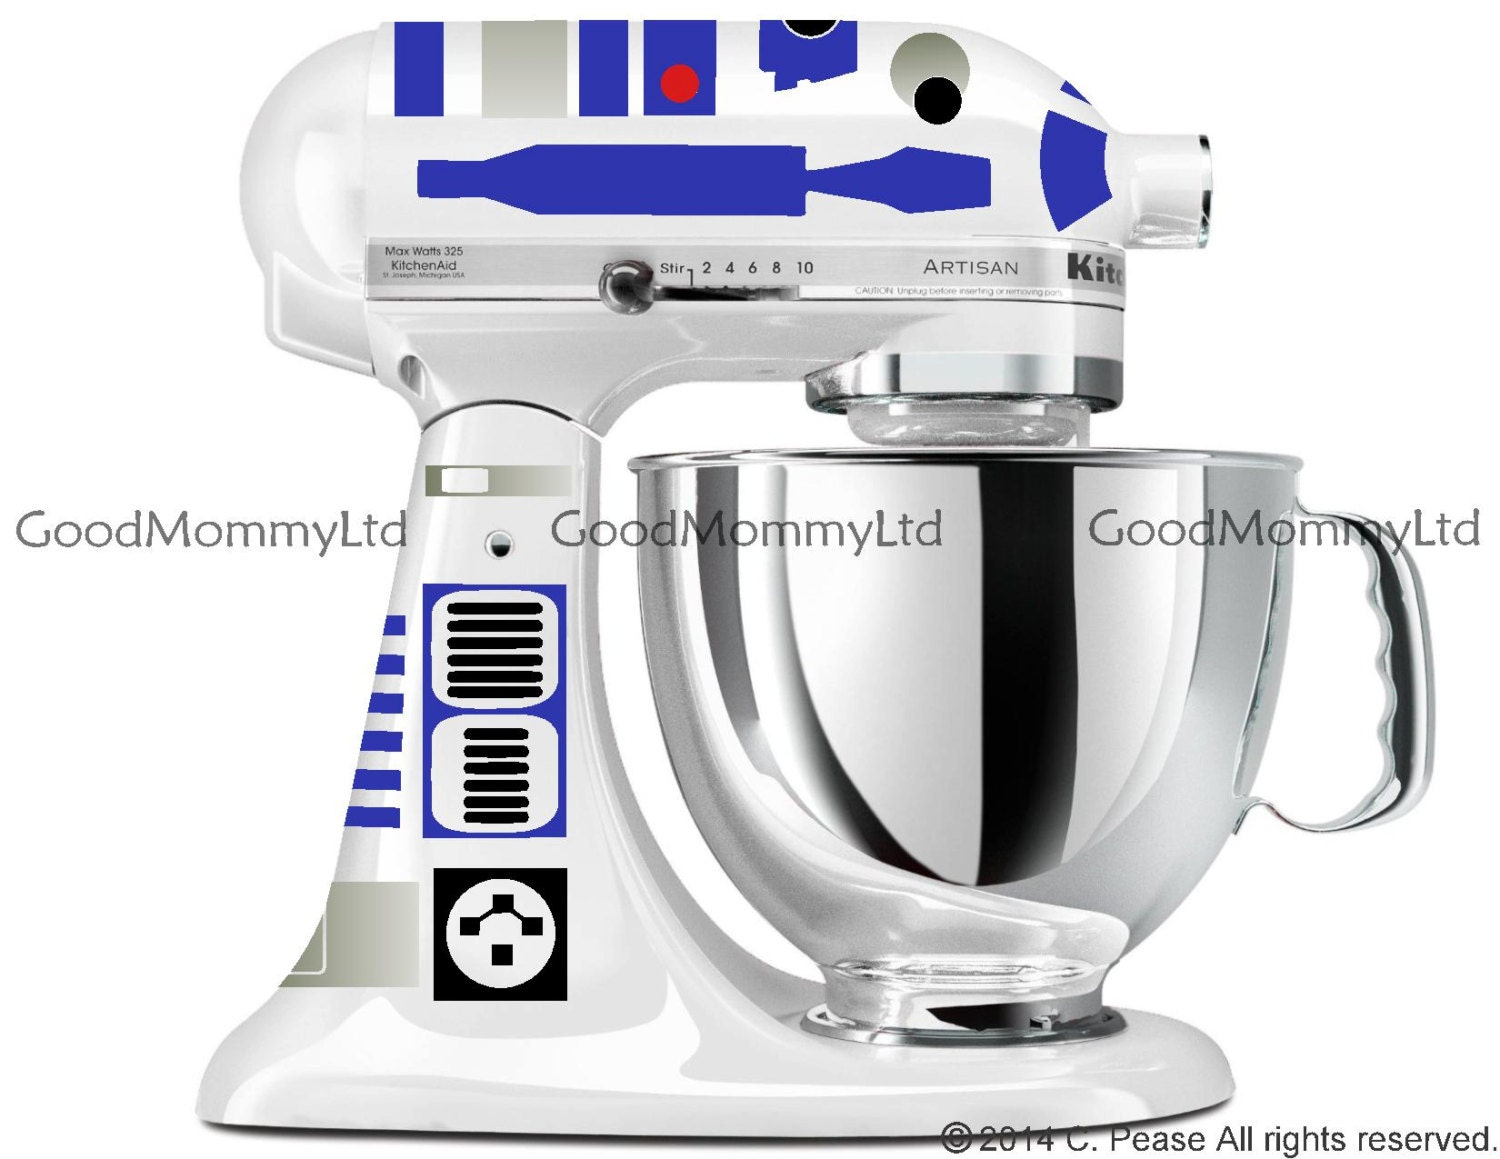 R2D2 Decal Kit for your KitchenAid Stand Mixer Star Wars